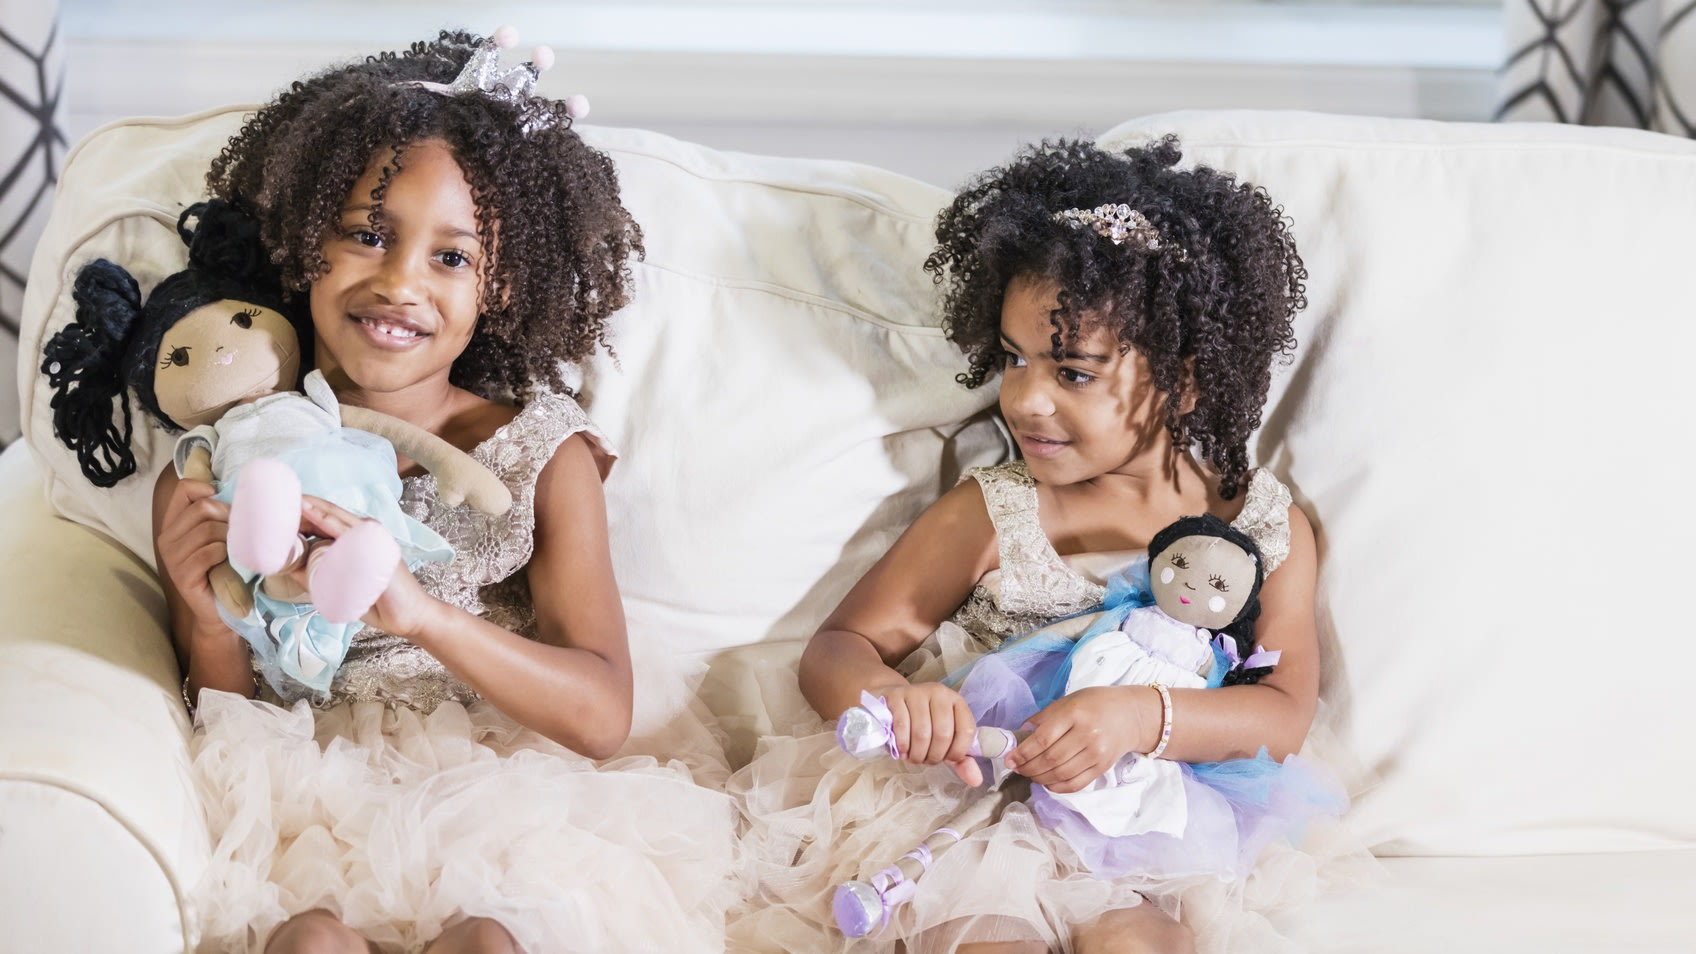 Two Canadian Dads Create New Line Of Black Dolls Dressed In Cameroonian-Inspired Attire